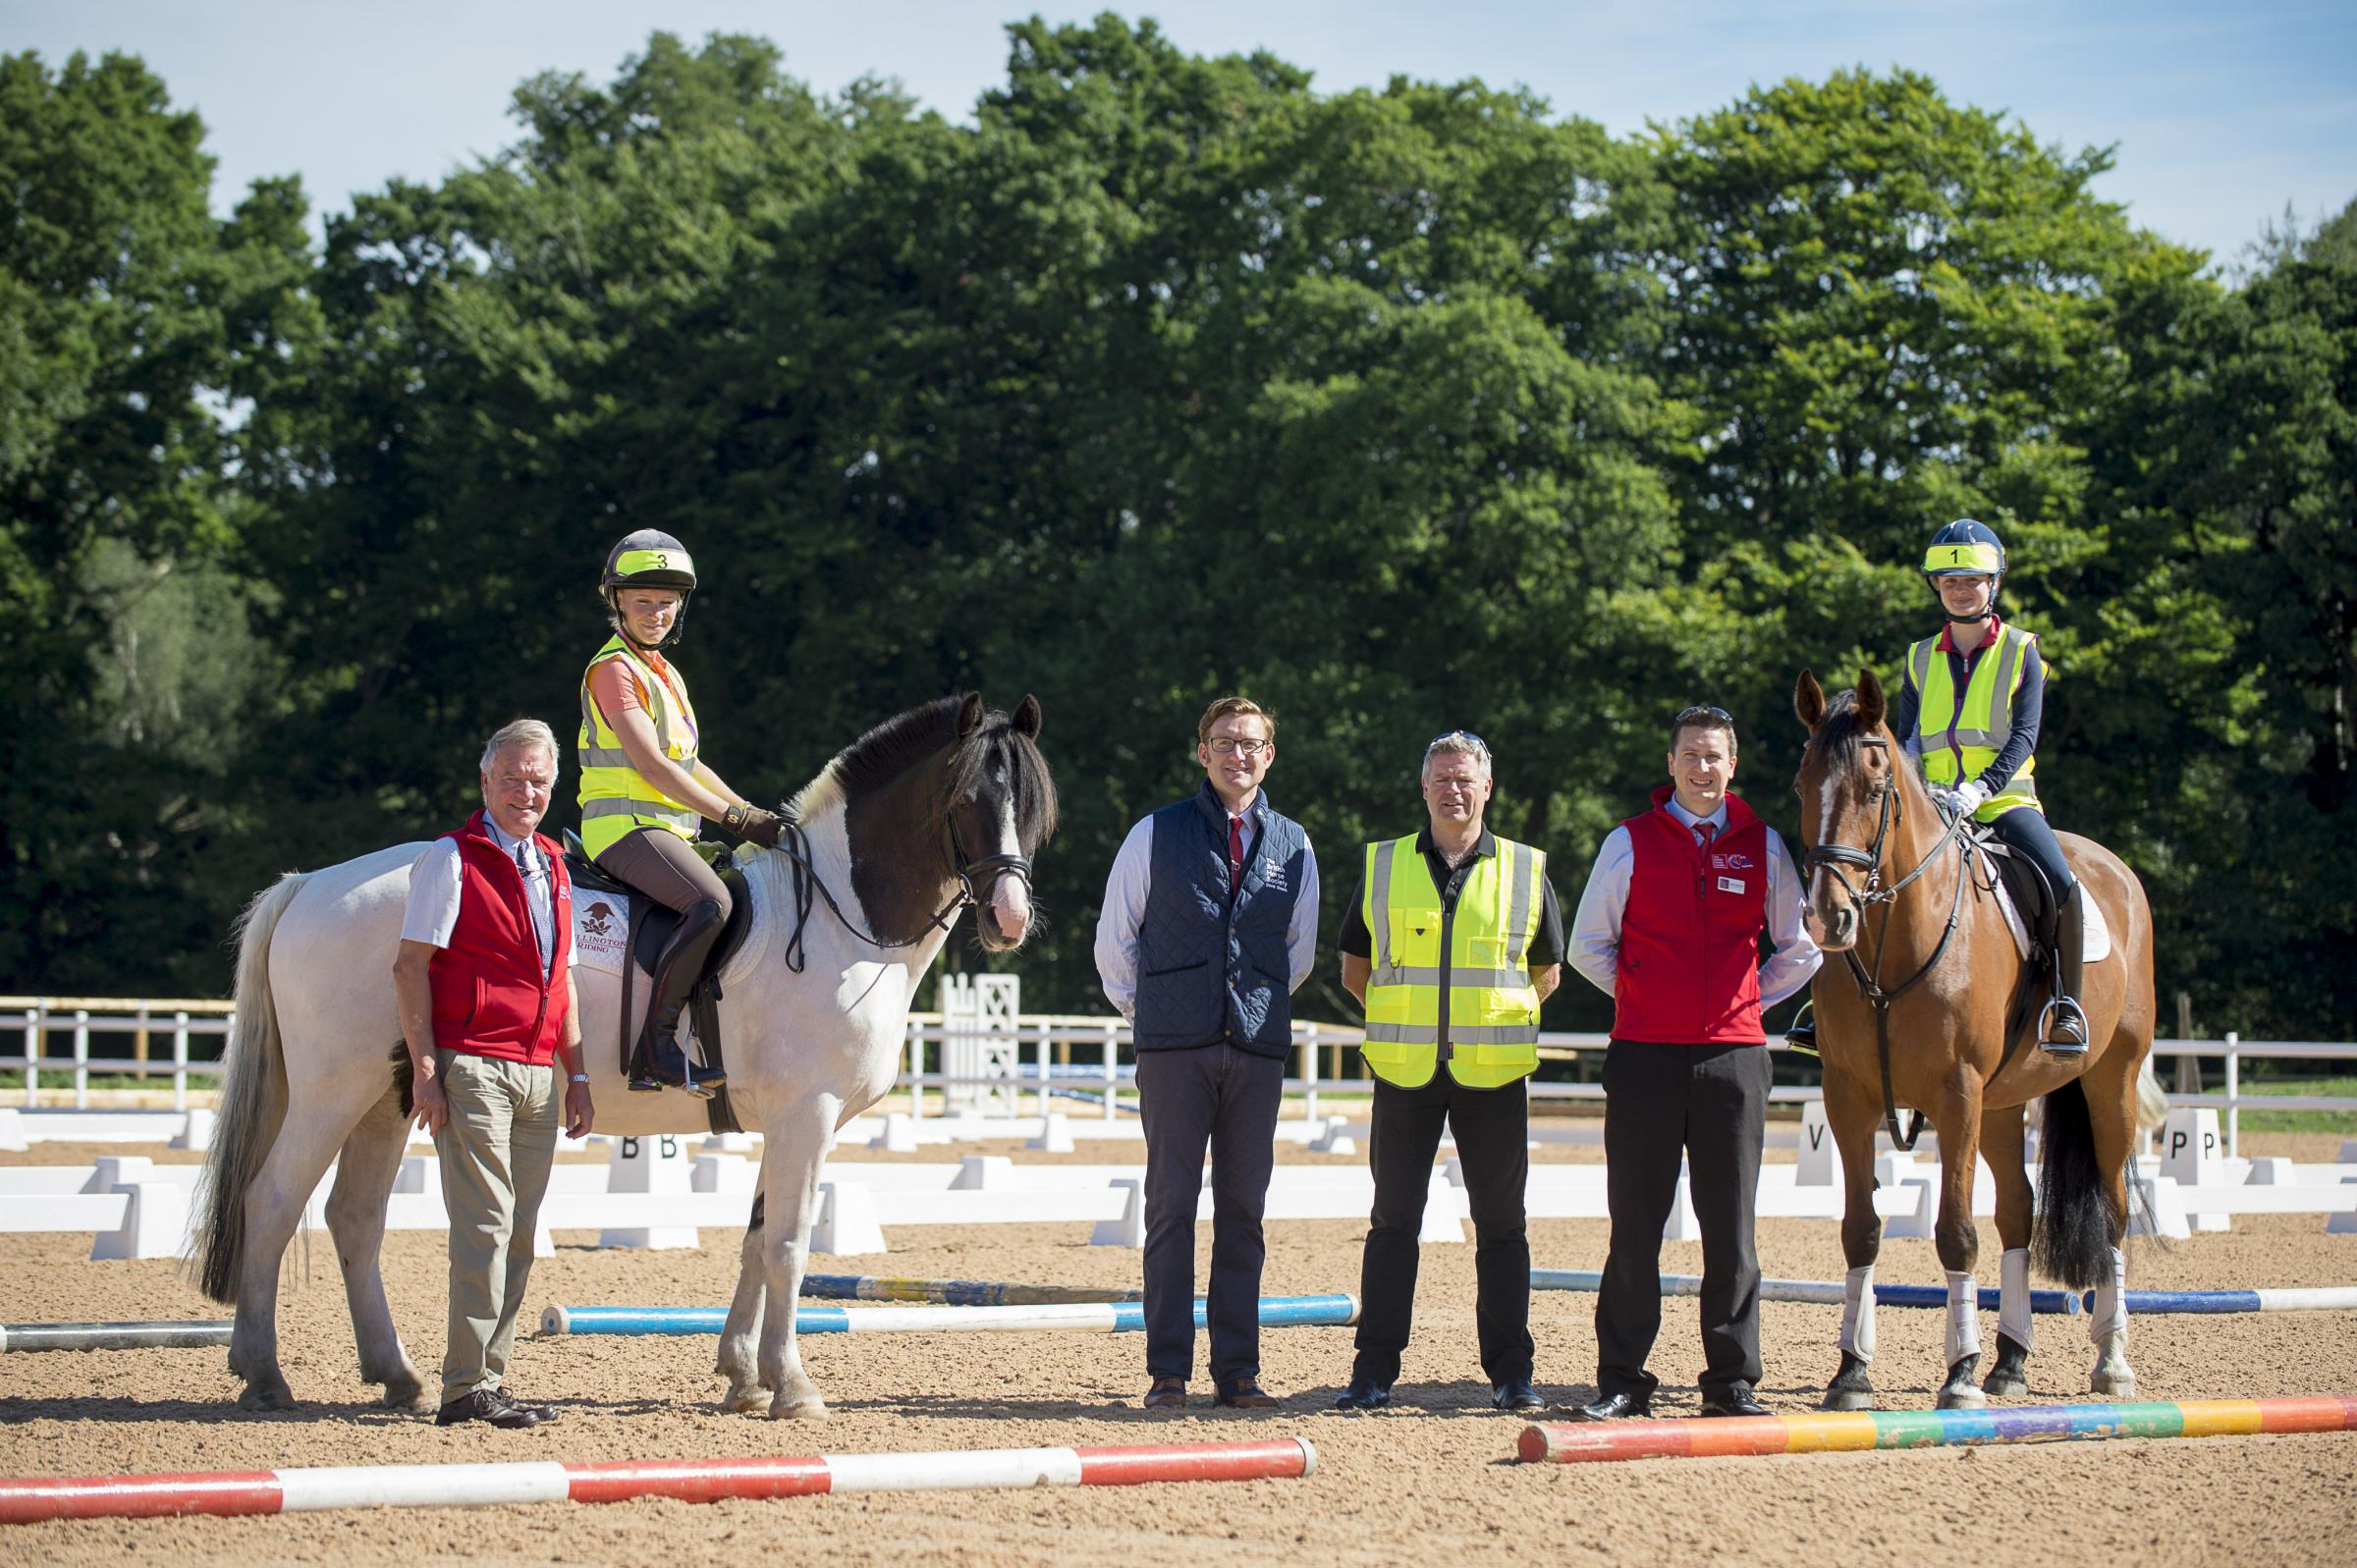 From left, International coach Yogi Breisner FBHS, broadcaster Lizzie Greenwood-Hughes, BHS Chairman David Sheerin BHSI, BHS Director of Safety Alan Hiscox, Director of Education Alex Copeland and International dressage champion Phoebe Peters attend the l